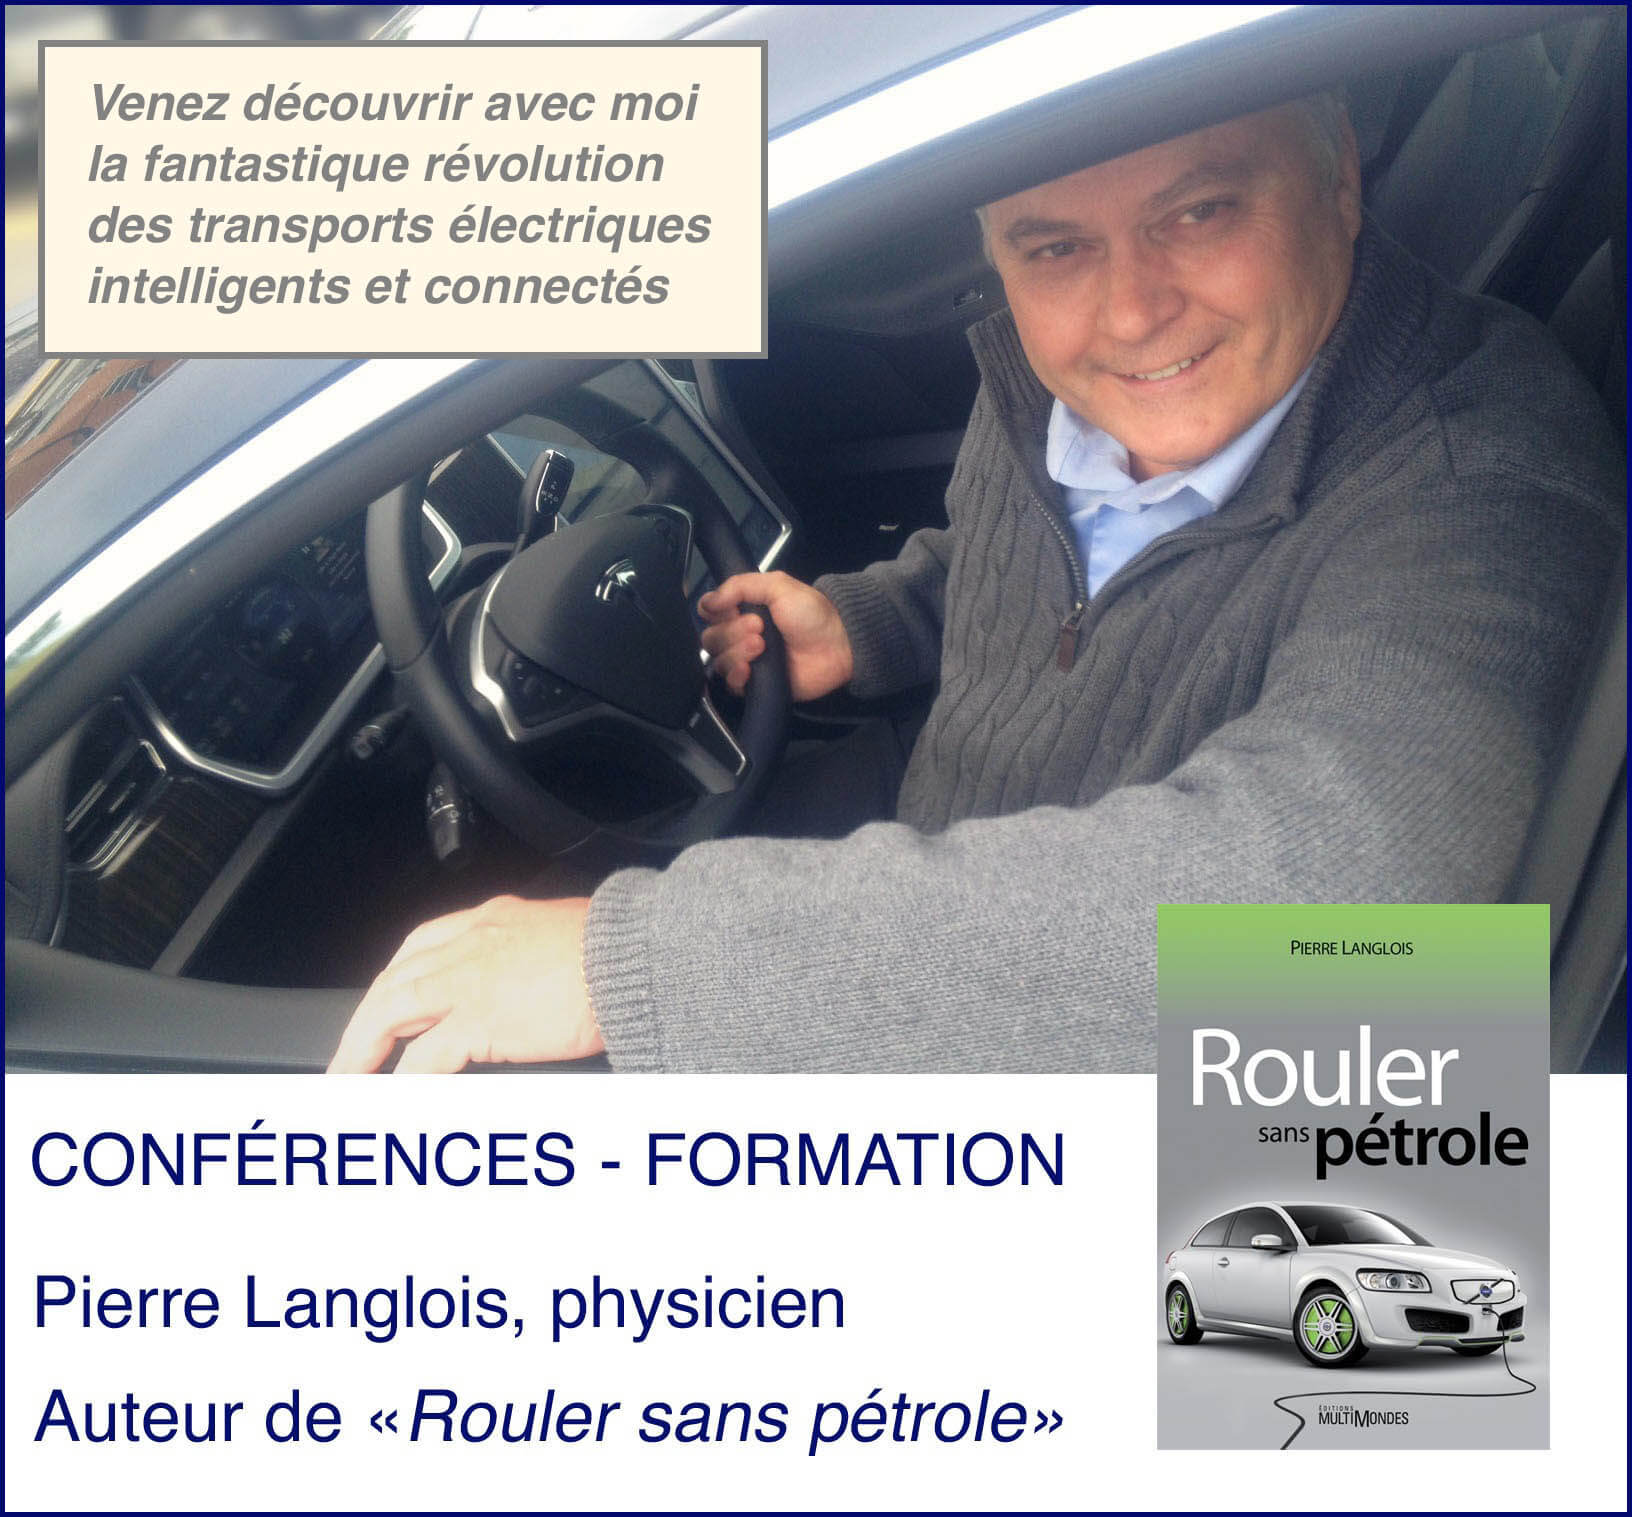 annonce-formation-conference-piere-langlois